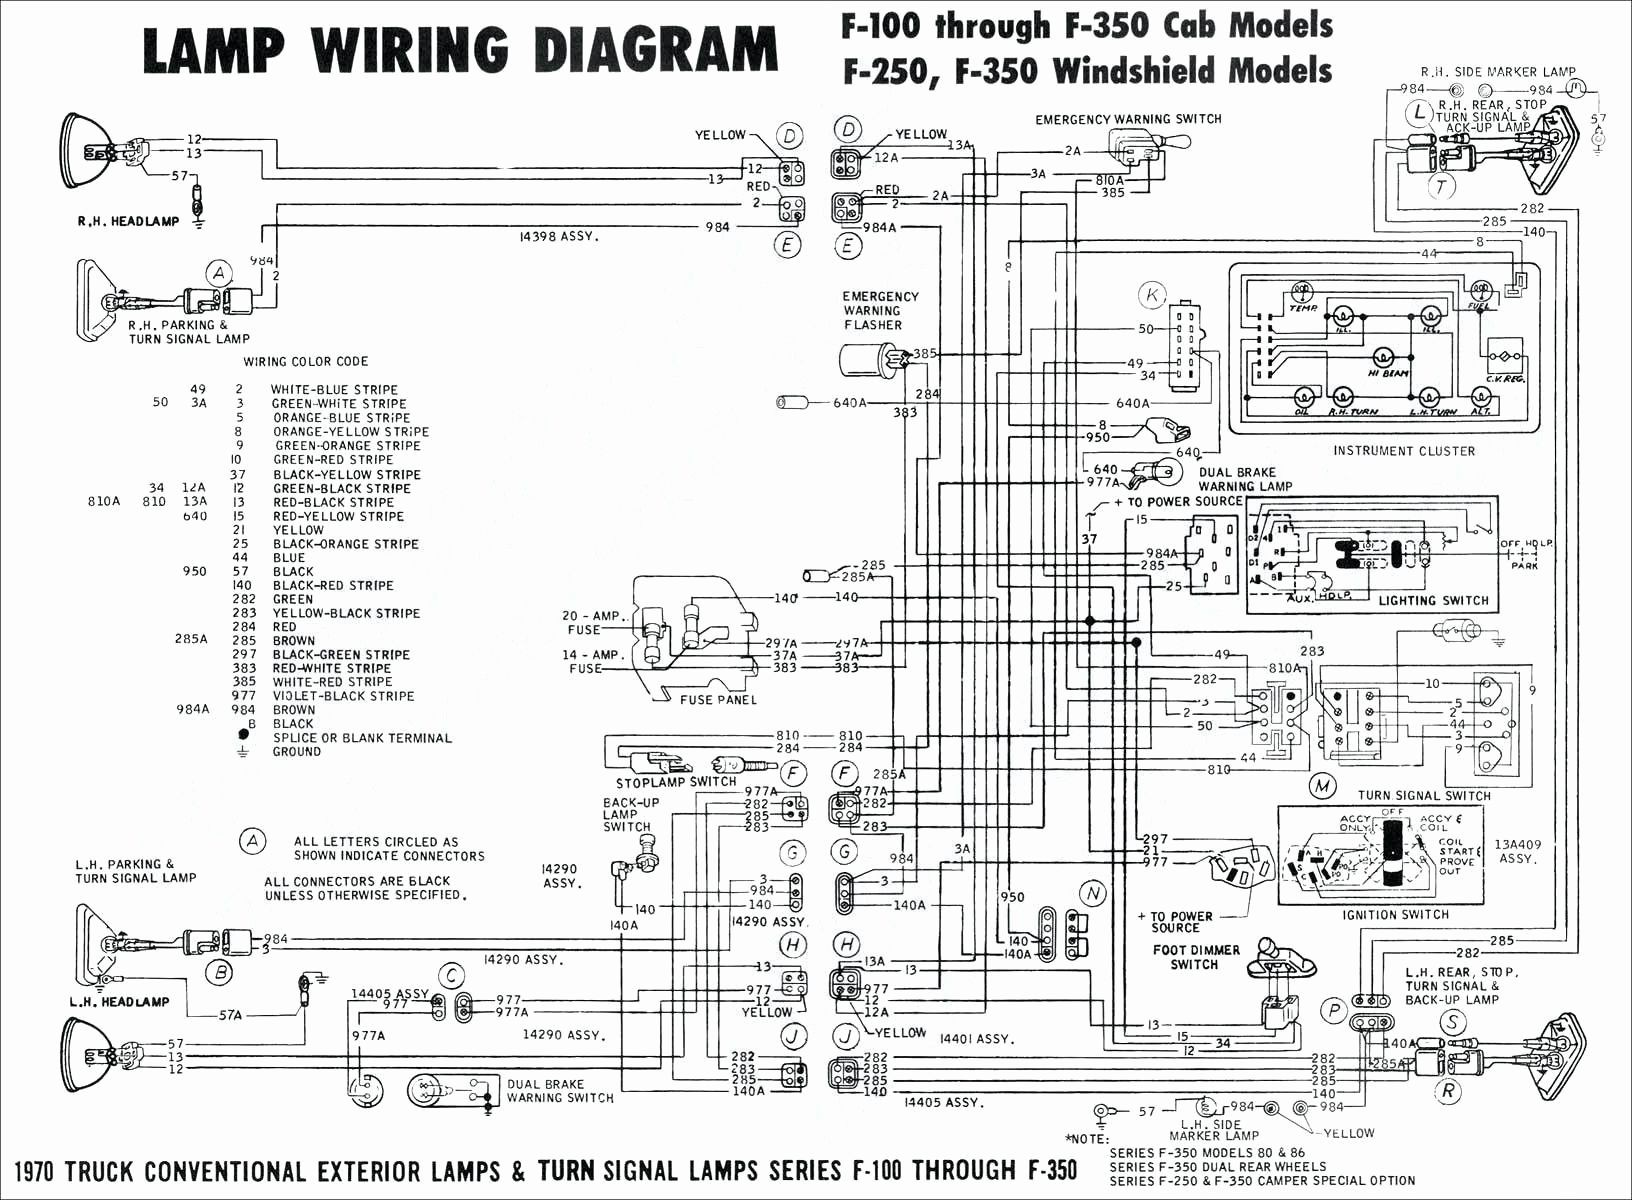 1996 Chevy S10 Headlight Awesome 1986 Chevy Truck Headlight Wiring Diagrams Learn Wiring Diagram